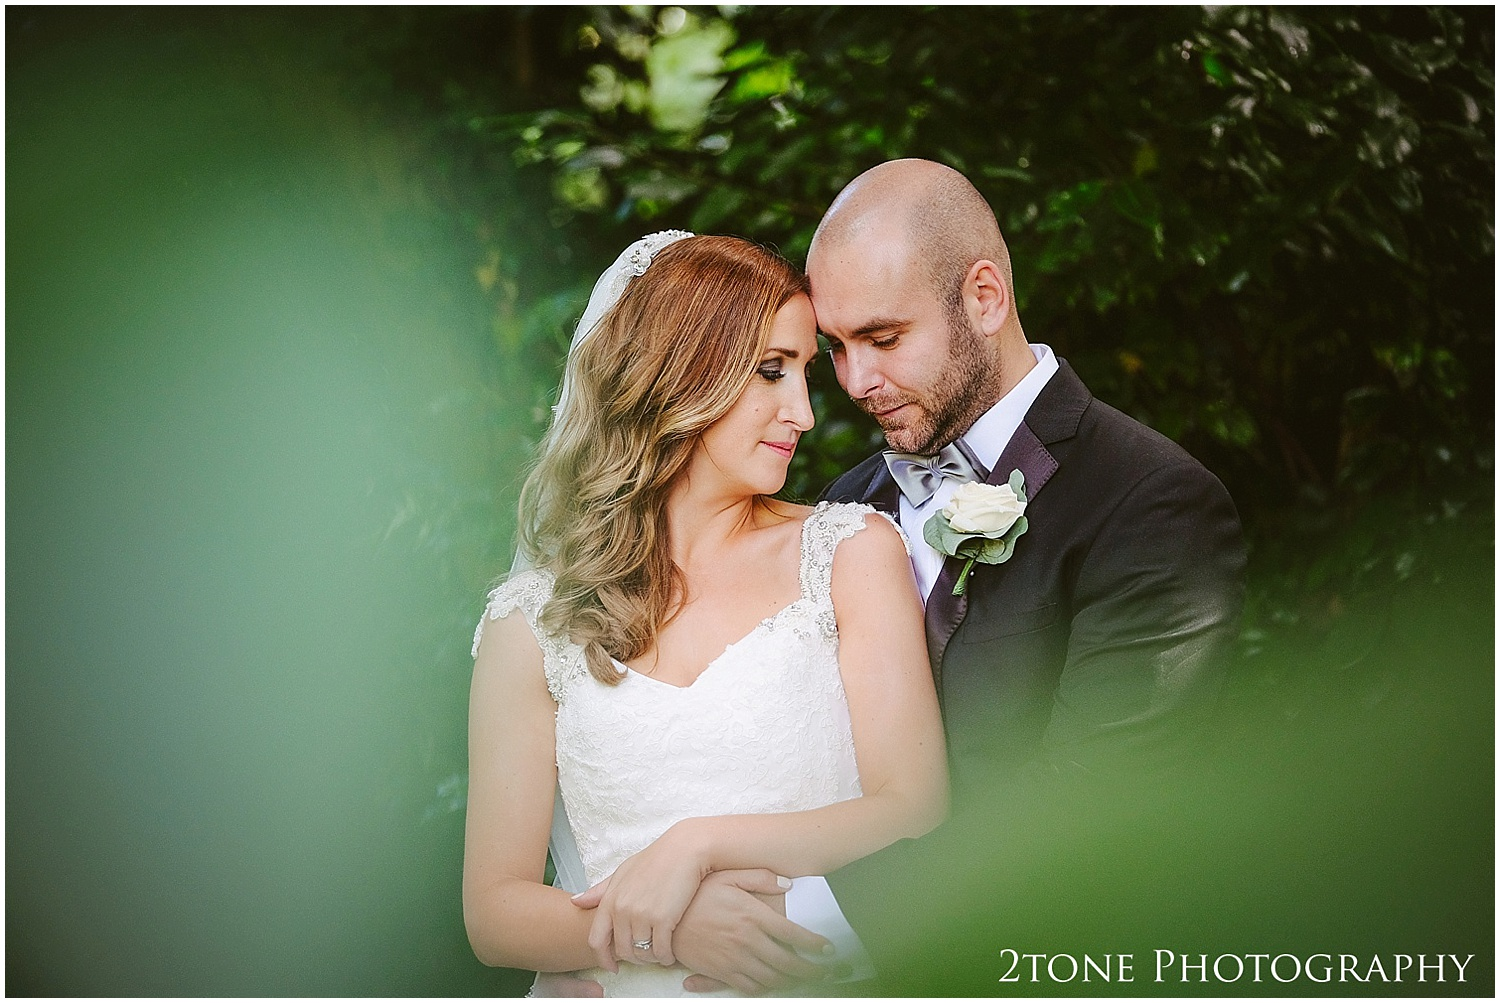 Weddings at Ellingham Hall by www.2tonephotography.co.uk